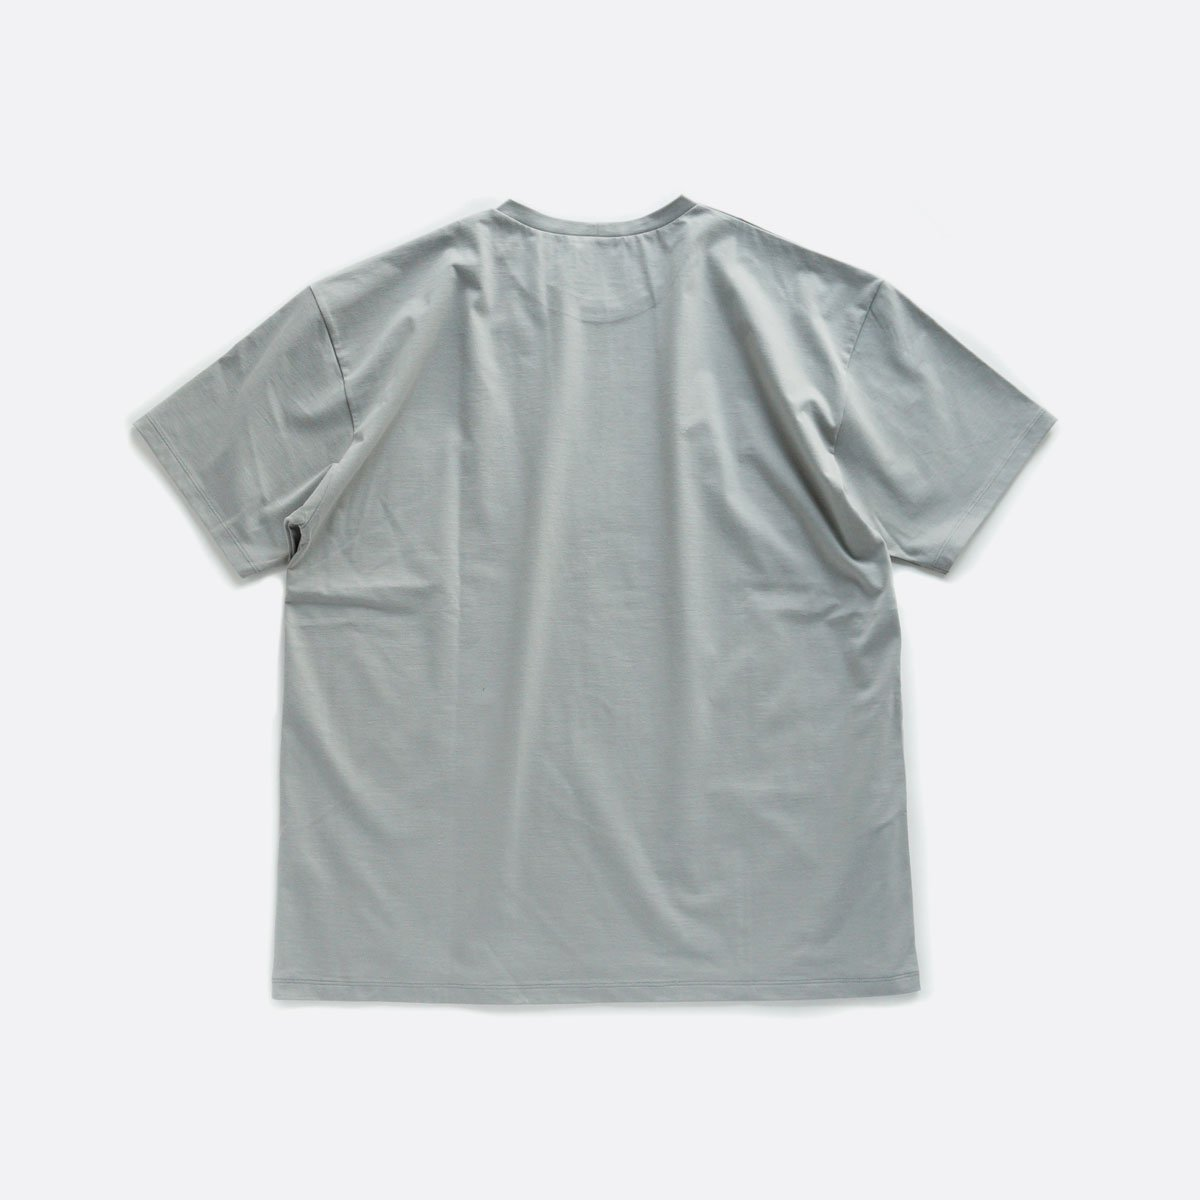 ATON NUBACK COTTON OVERSIZED T-SHIRT (LIGHT GRAY)2